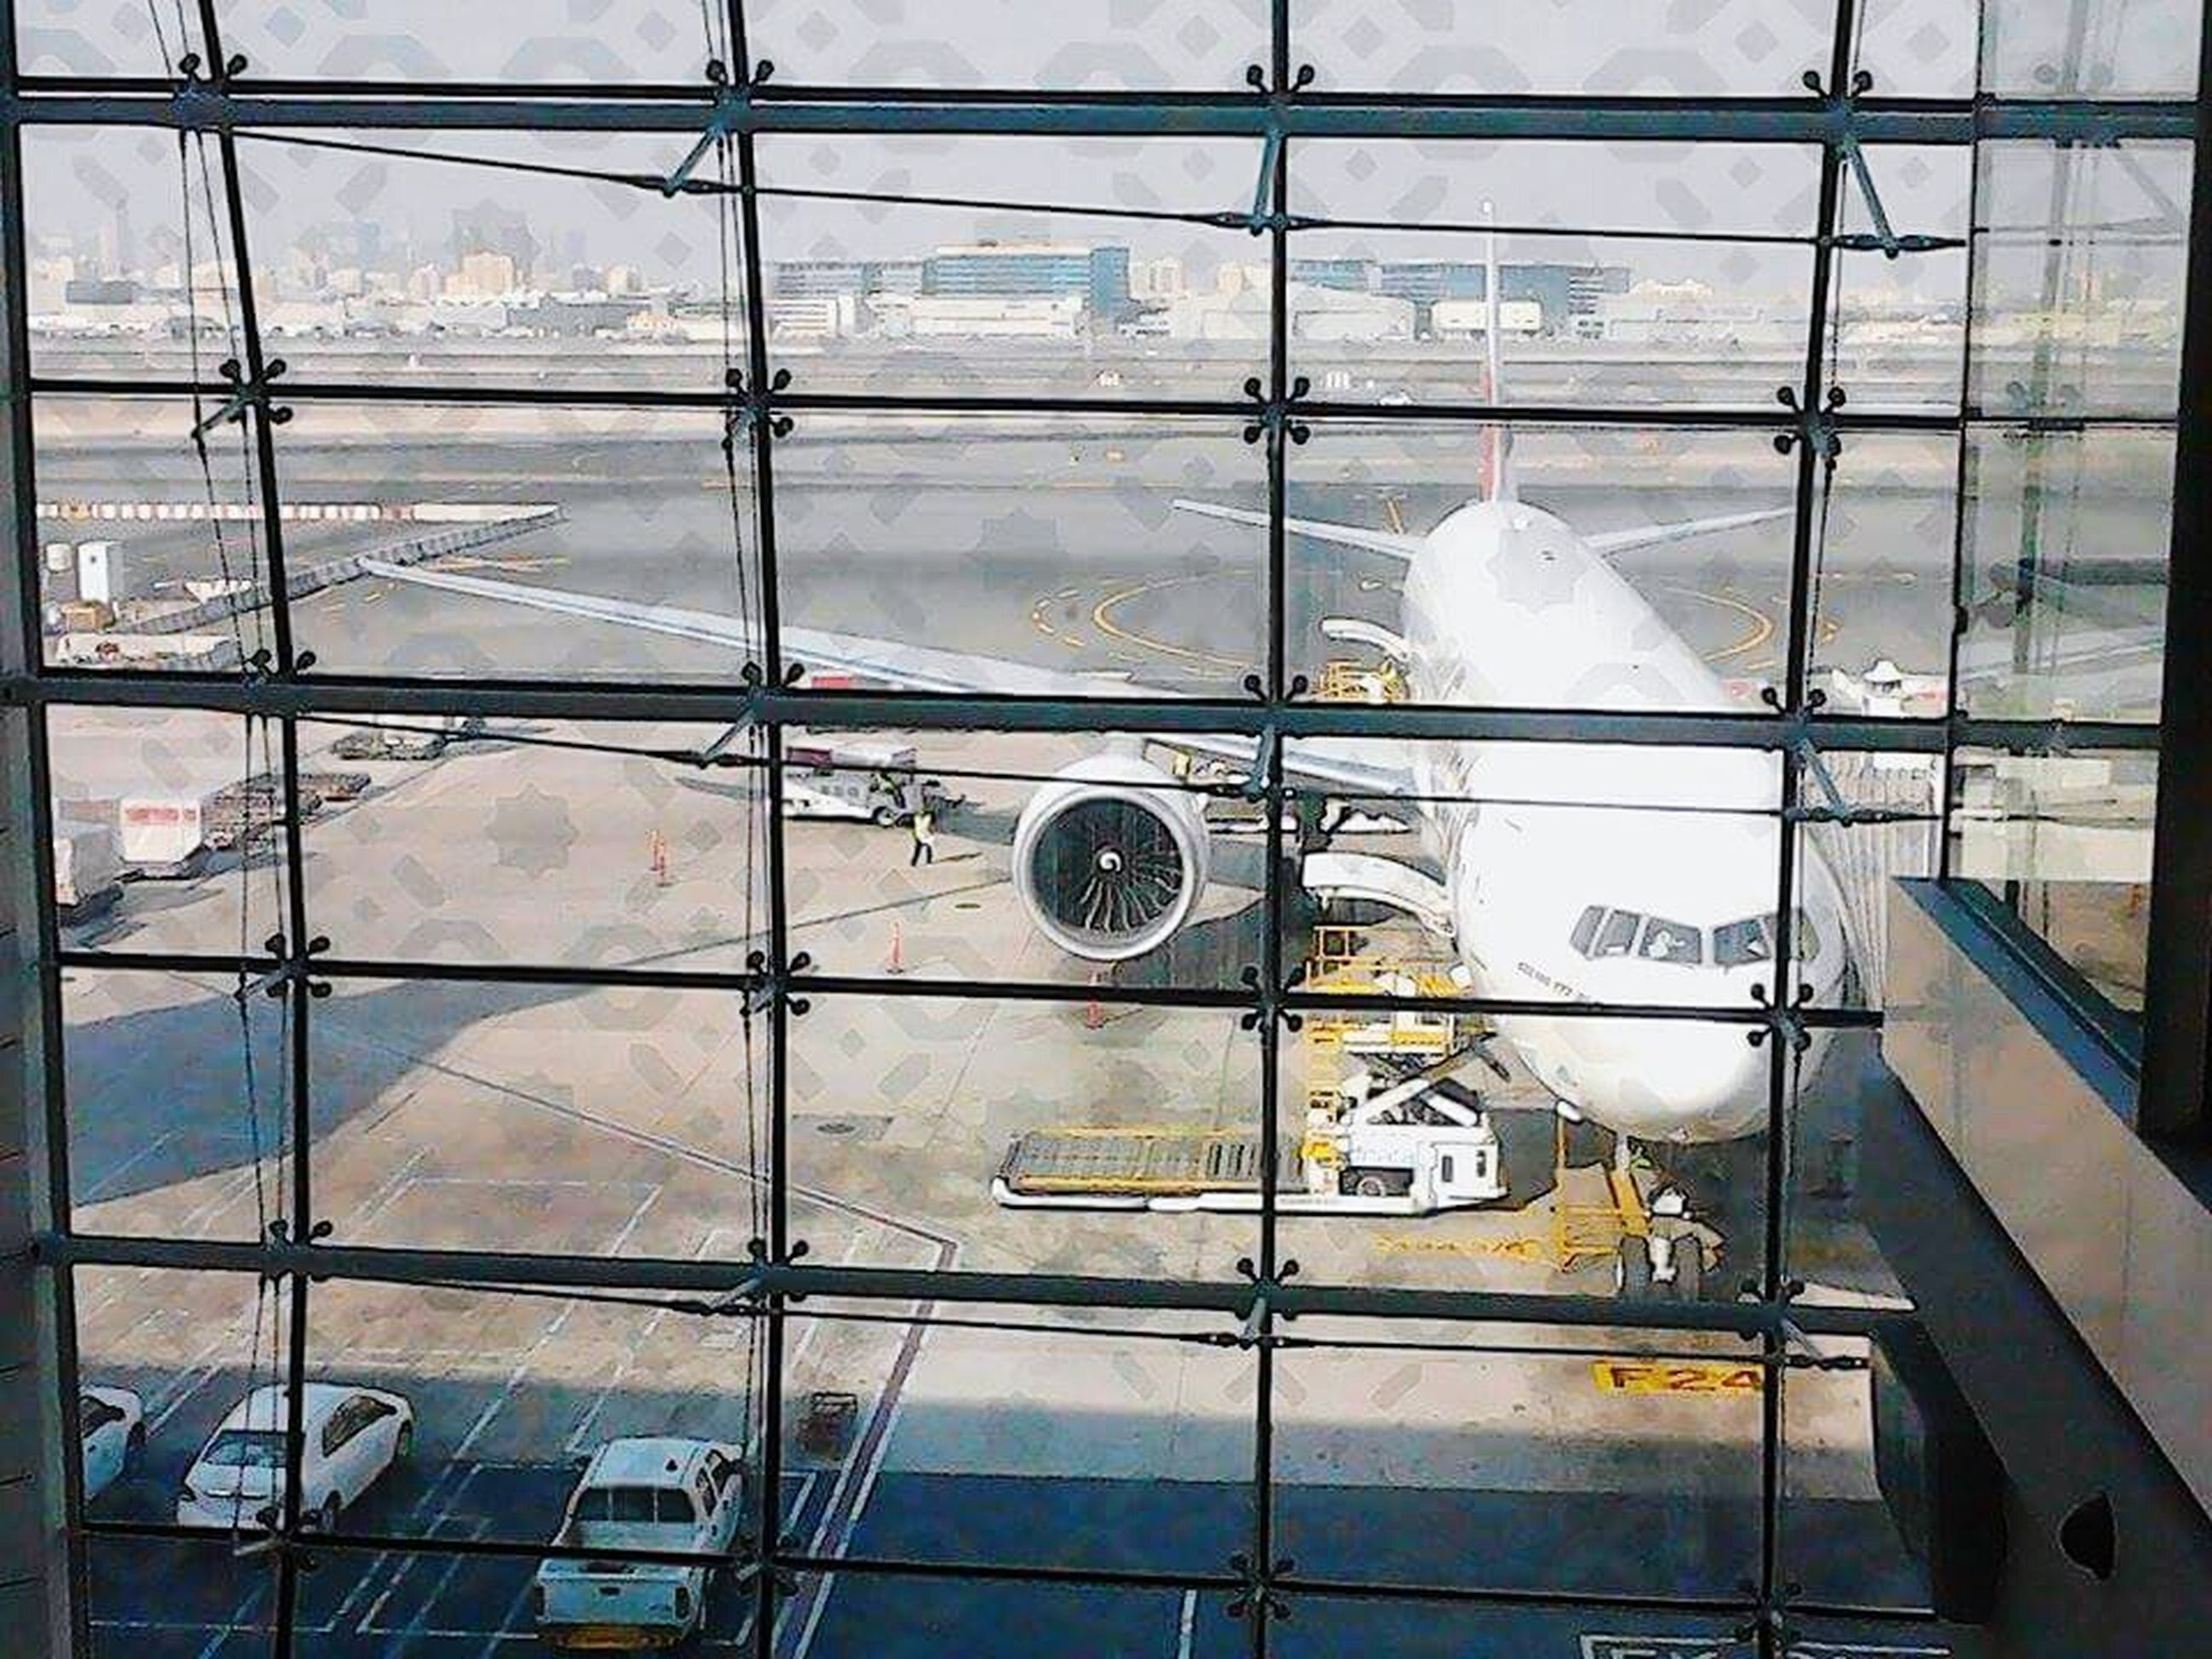 glass - material, transparent, window, indoors, reflection, built structure, architecture, glass, building exterior, city, building, day, modern, no people, low angle view, full frame, geometric shape, backgrounds, ceiling, airport